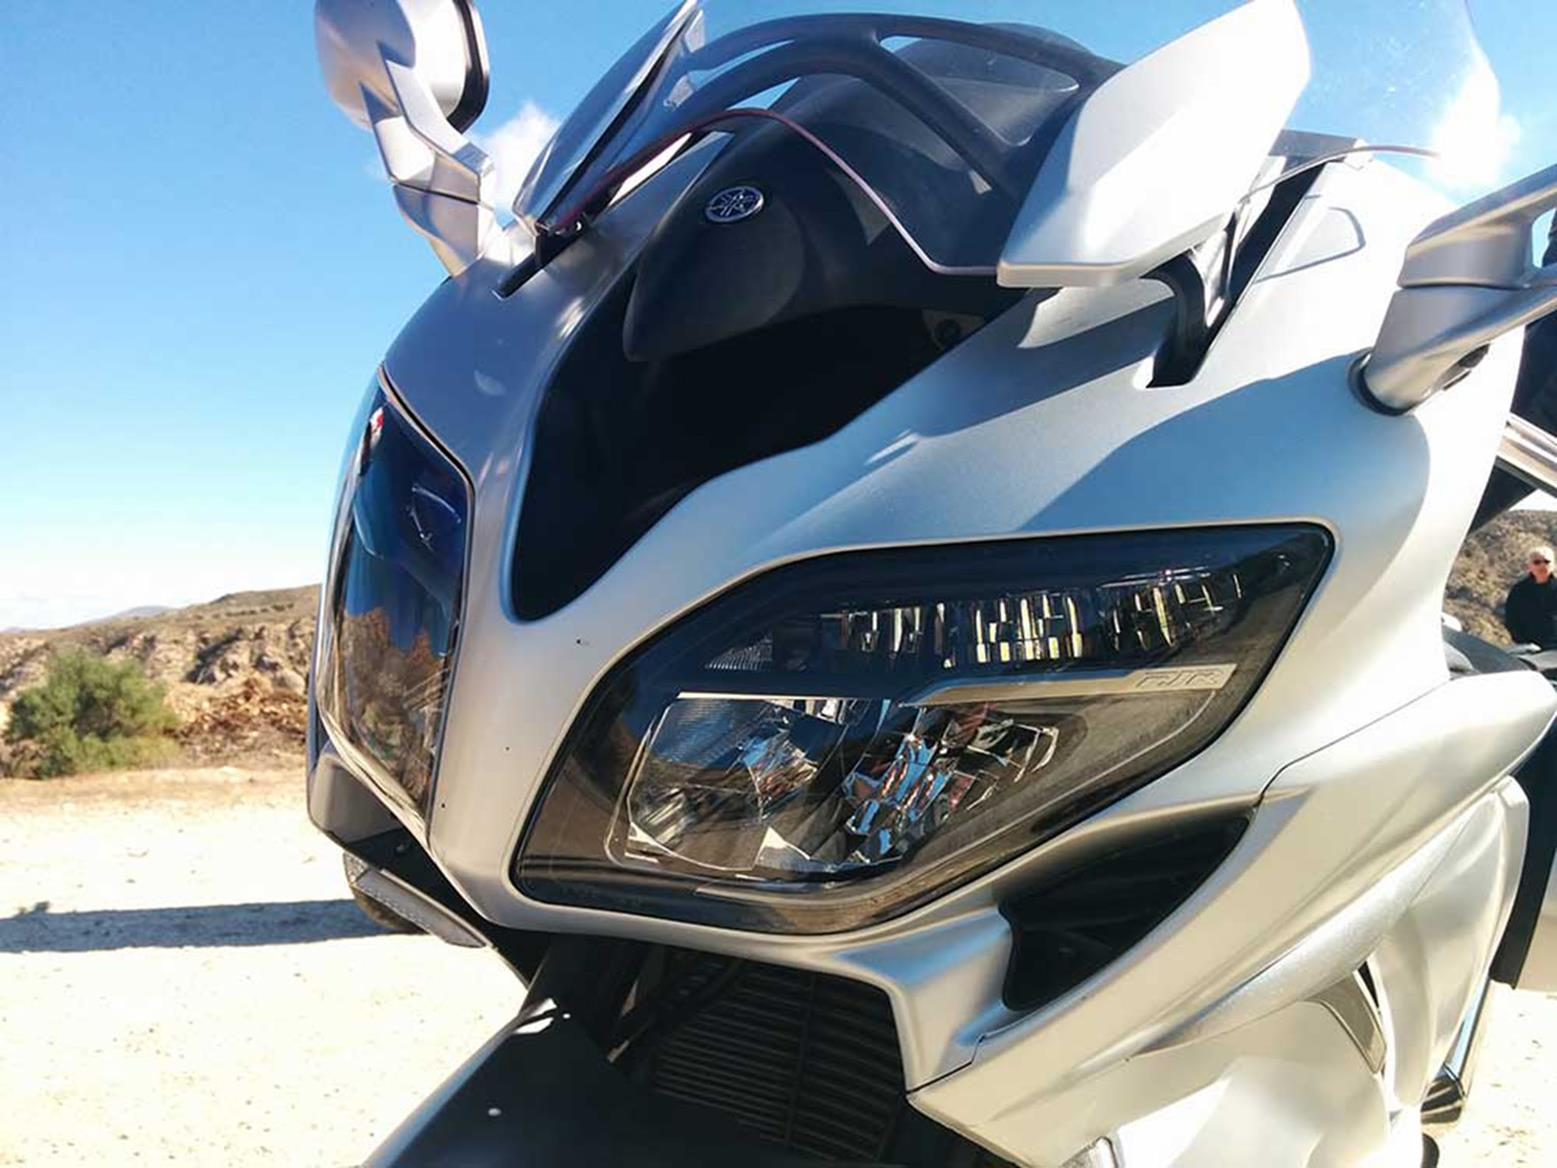 New Yamaha FJR1300 headlight with LED power